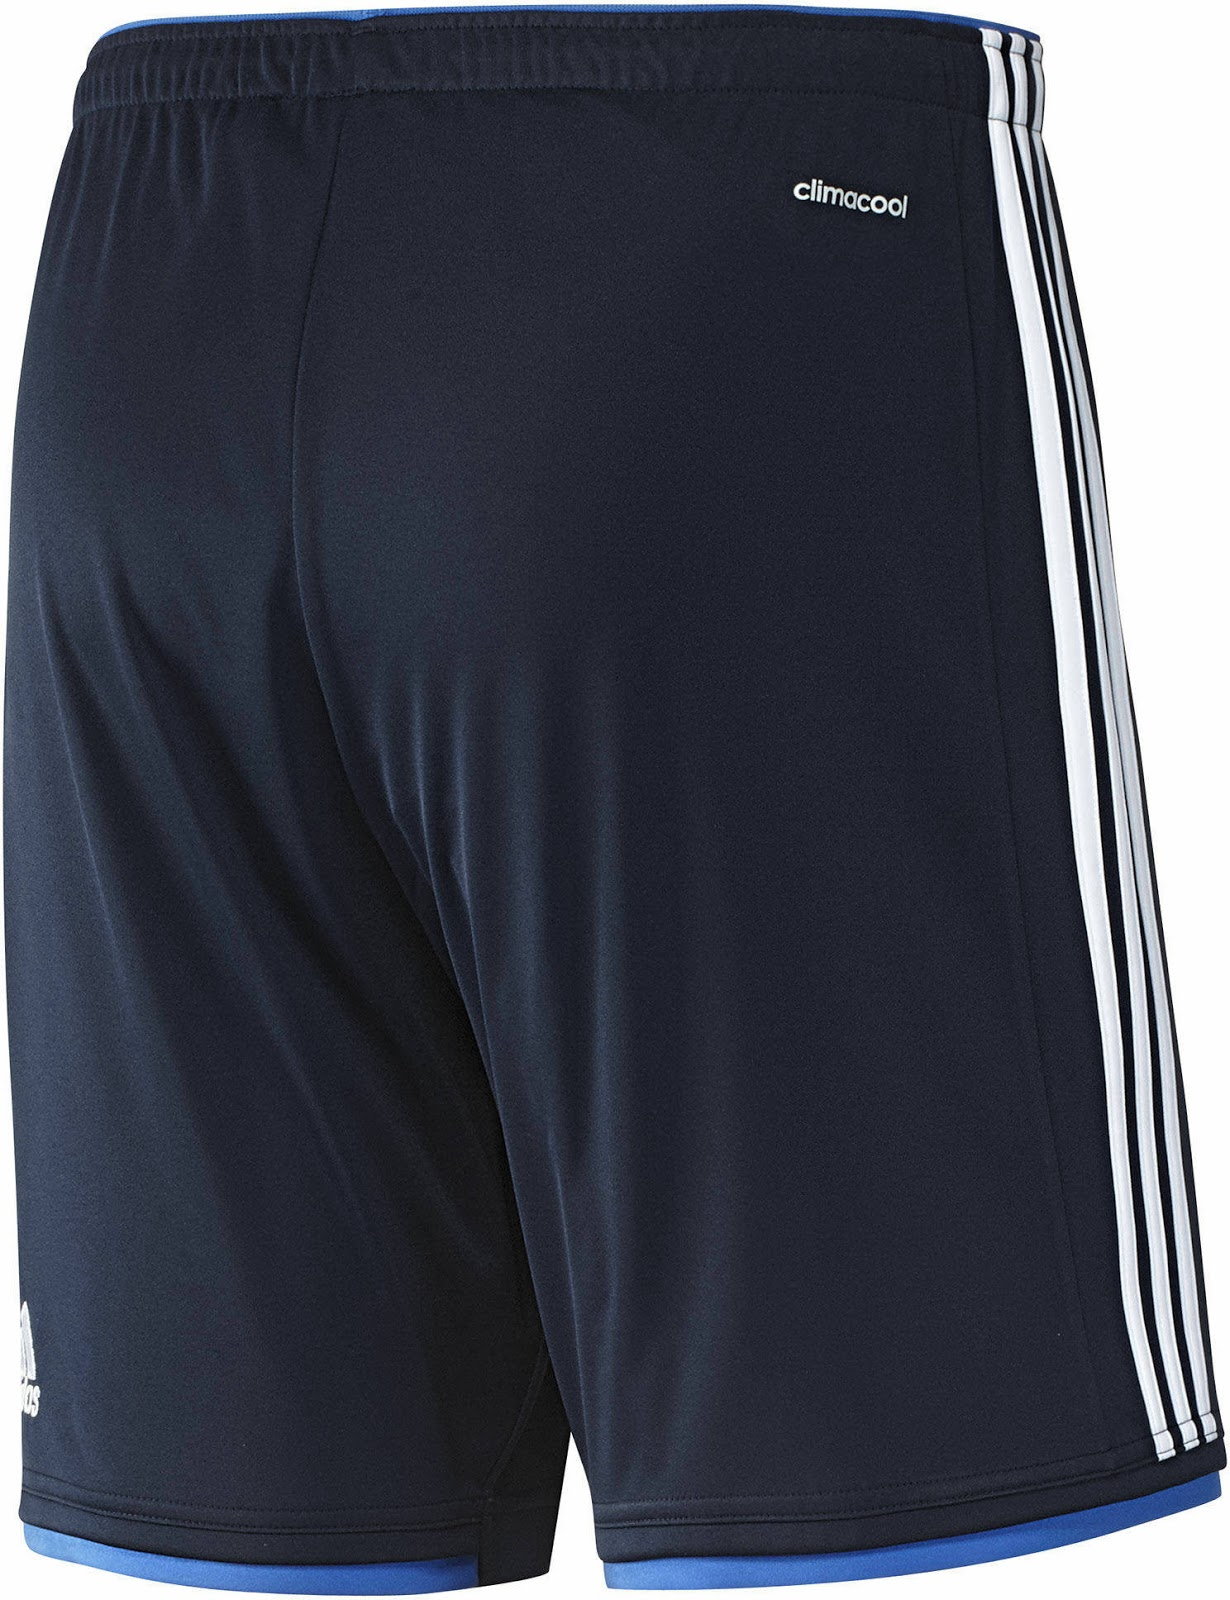 a170a940c The shorts of the Denmark 2014 Away Shirt are navy with light blue details  and white Adidas stripes.